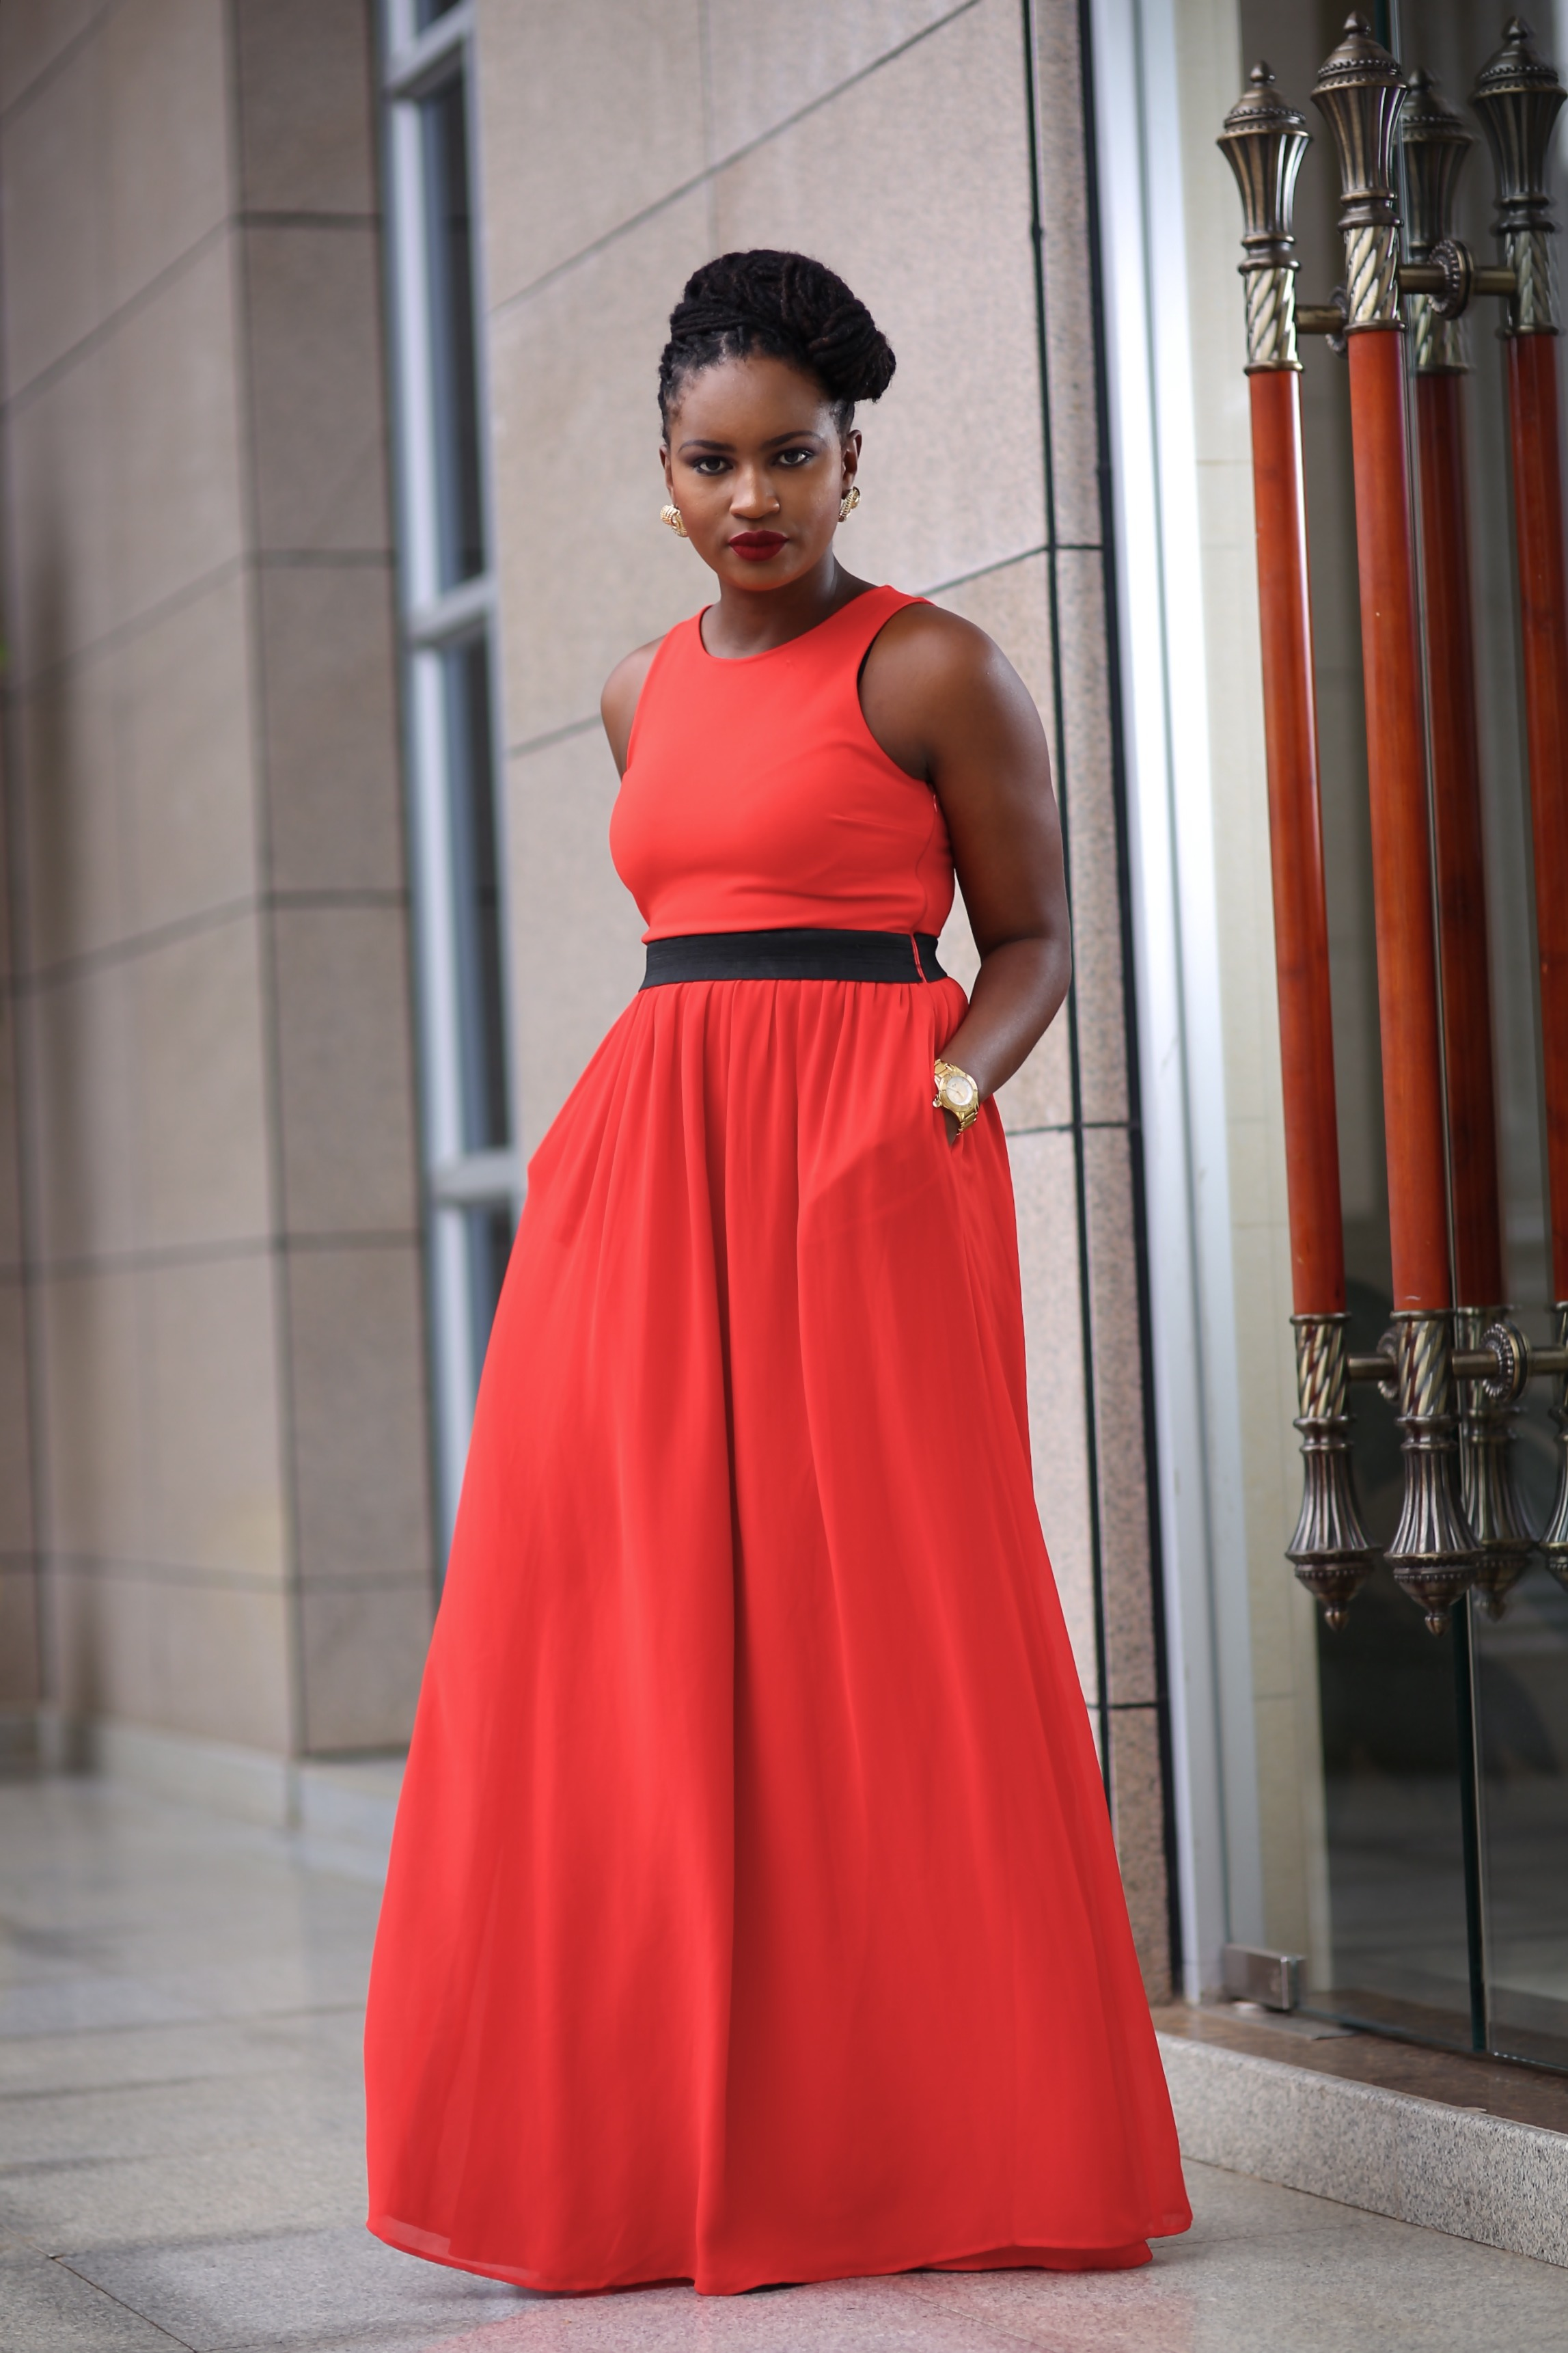 kenyan fashion blogger